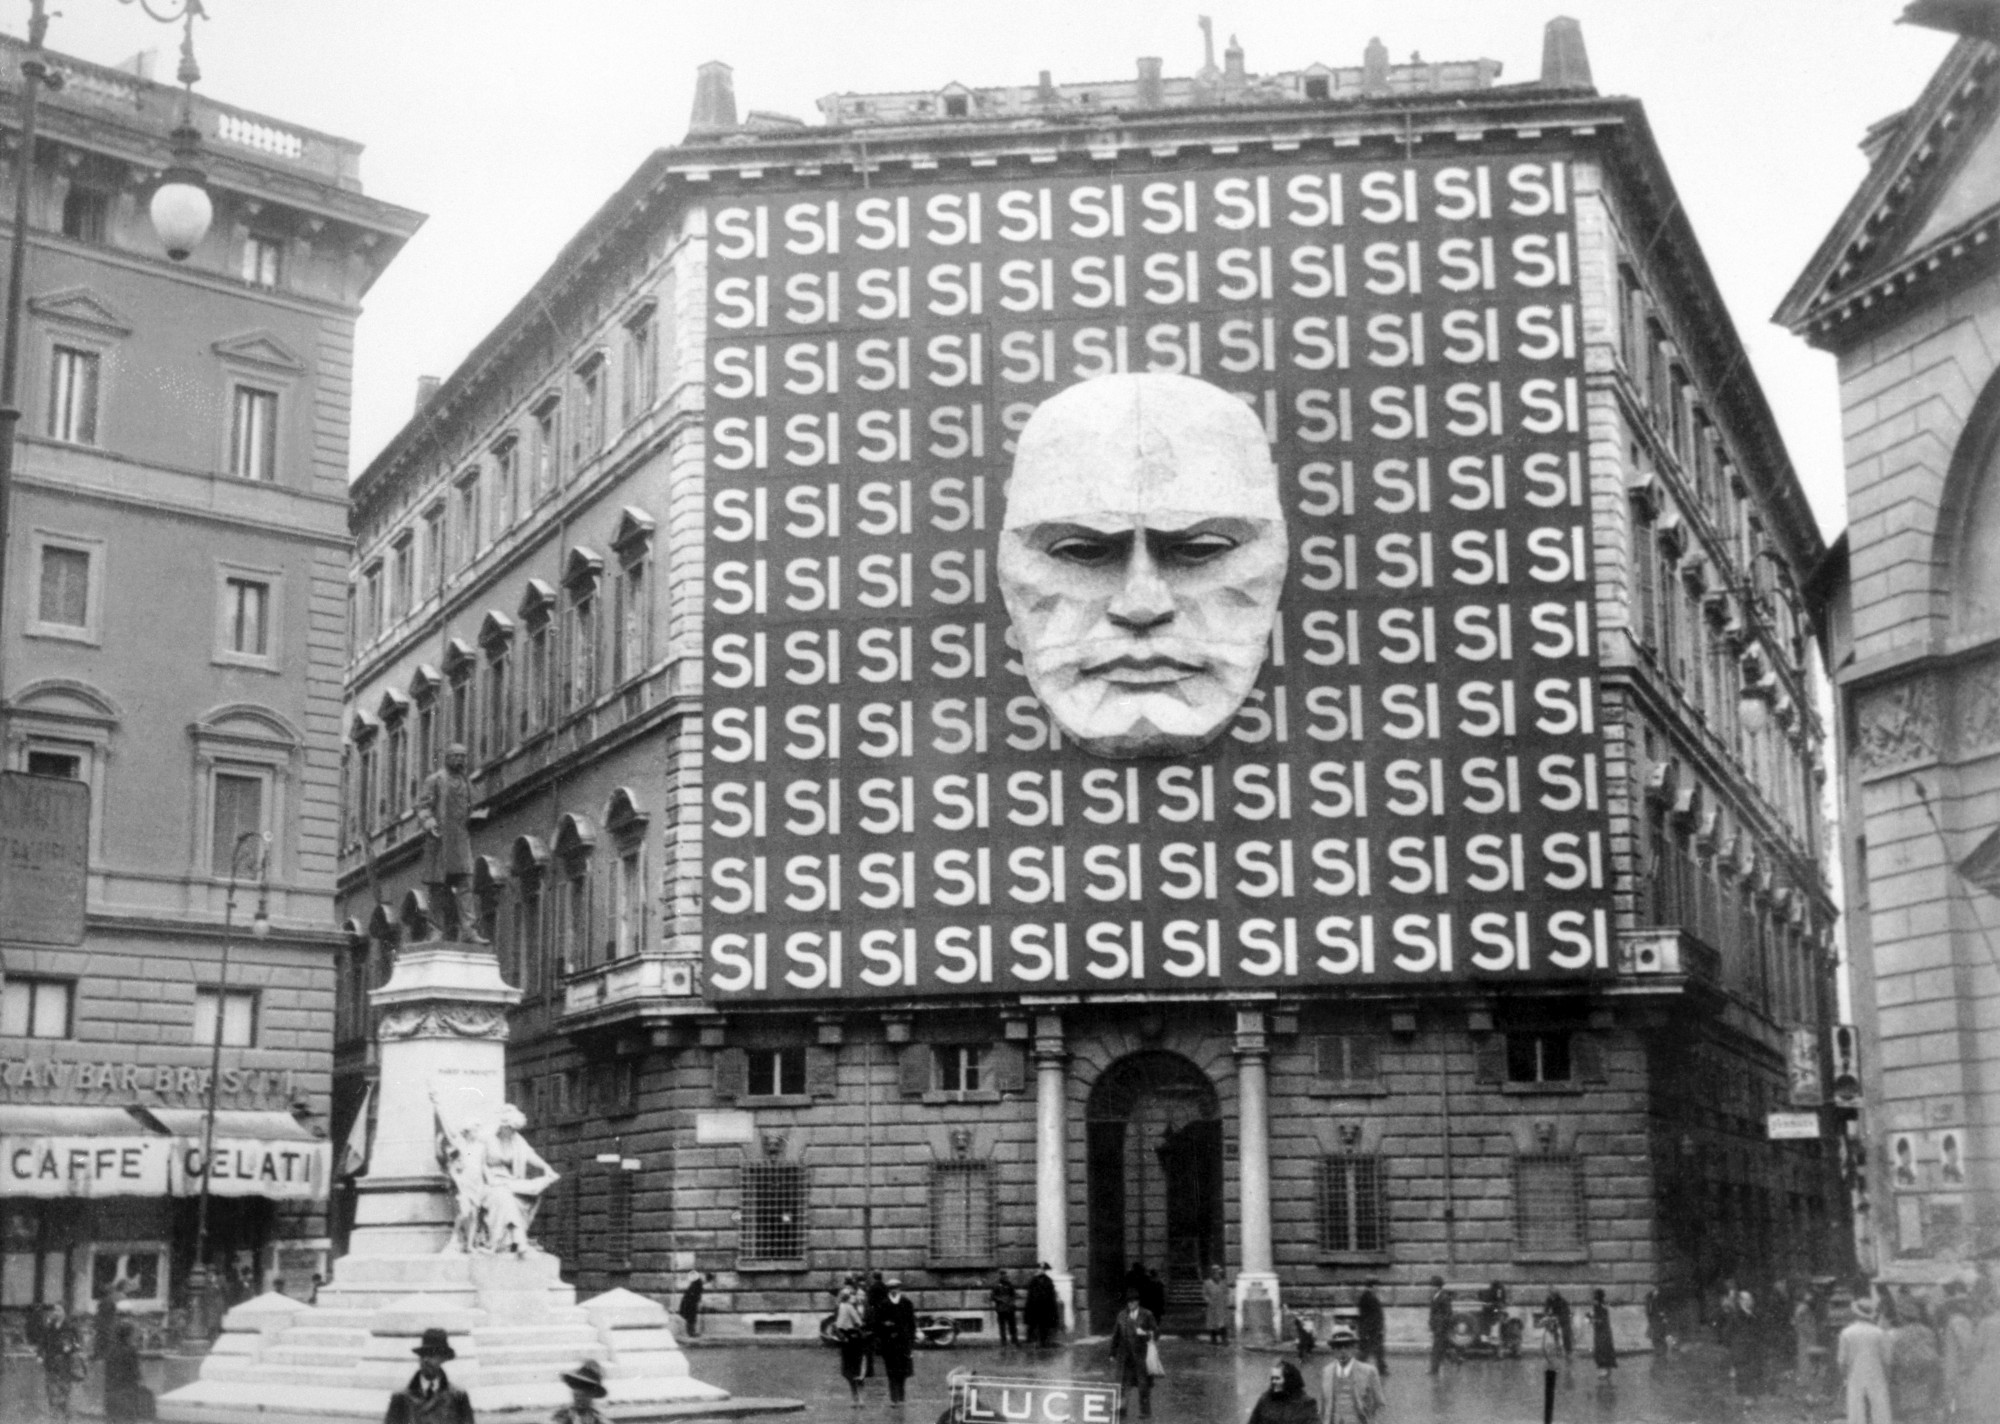 fascism under mussolini in italy Italy under mussolini is no doubt a serious menace to world peace  of the  italian people were happy and contented under fascist rule-—as is.